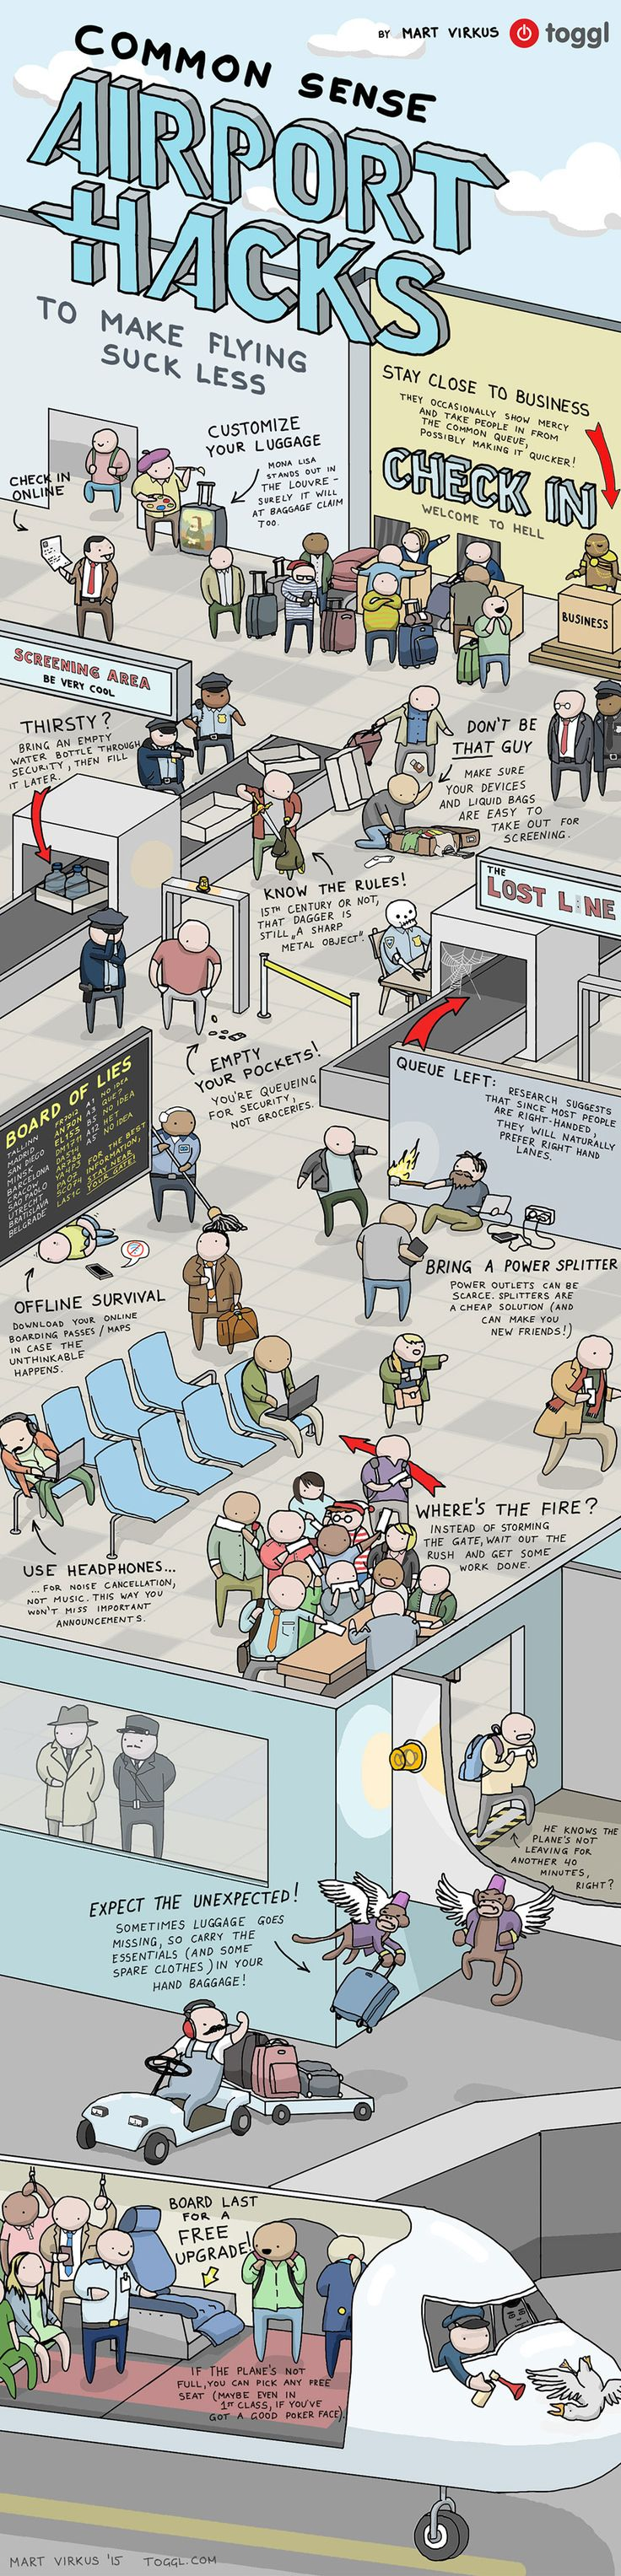 Awesome #Airport Hacks to Make #Flying Suck Less - Do you fancy an infographic?  There are a lot of them online, but if you want your own please visit http://www.linfografico.com/prezzi/  Online girano molte infografiche, se ne vuoi realizzare una tutta tua visita http://www.linfografico.com/prezzi/